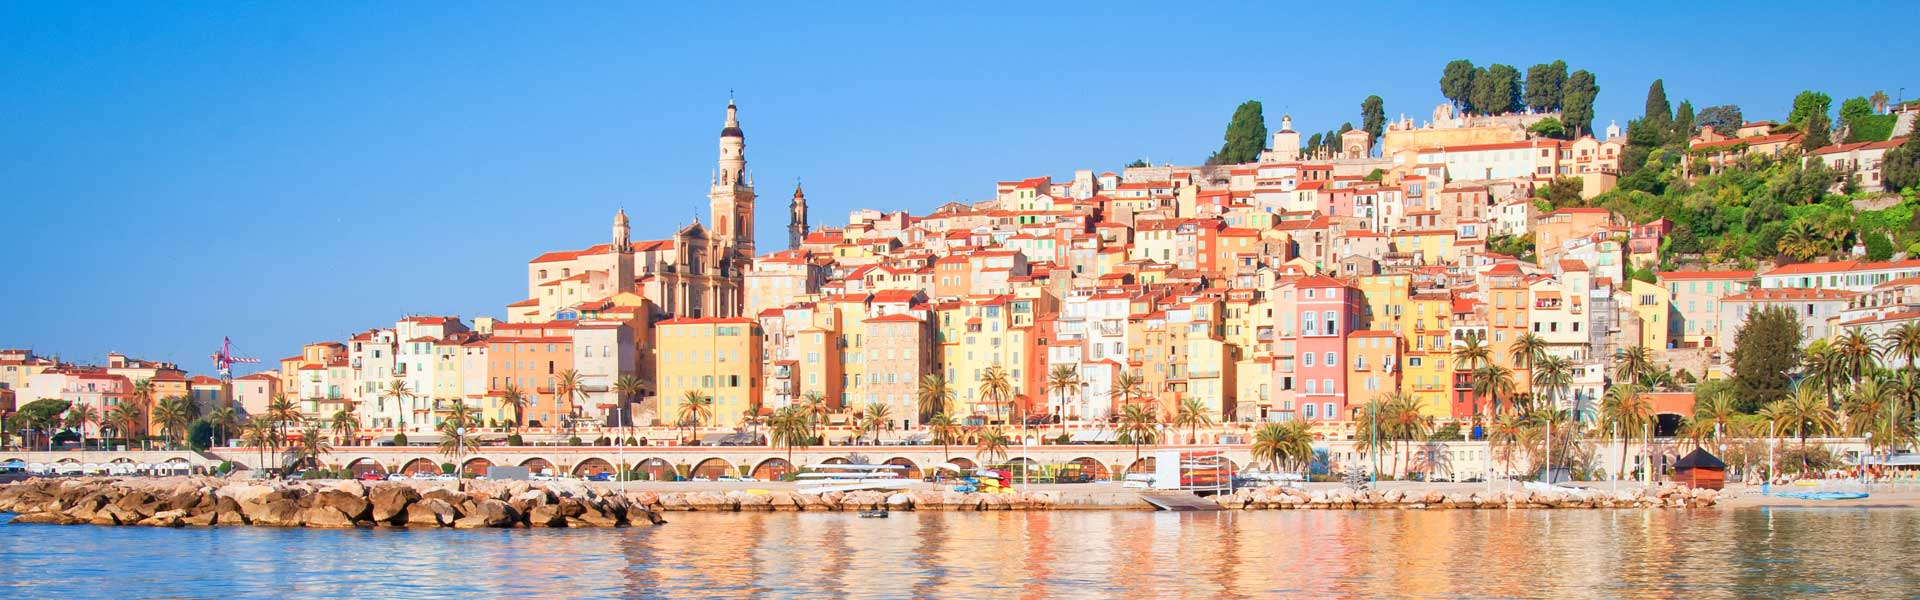 small-group-tours_french-italian-rivieras-tour